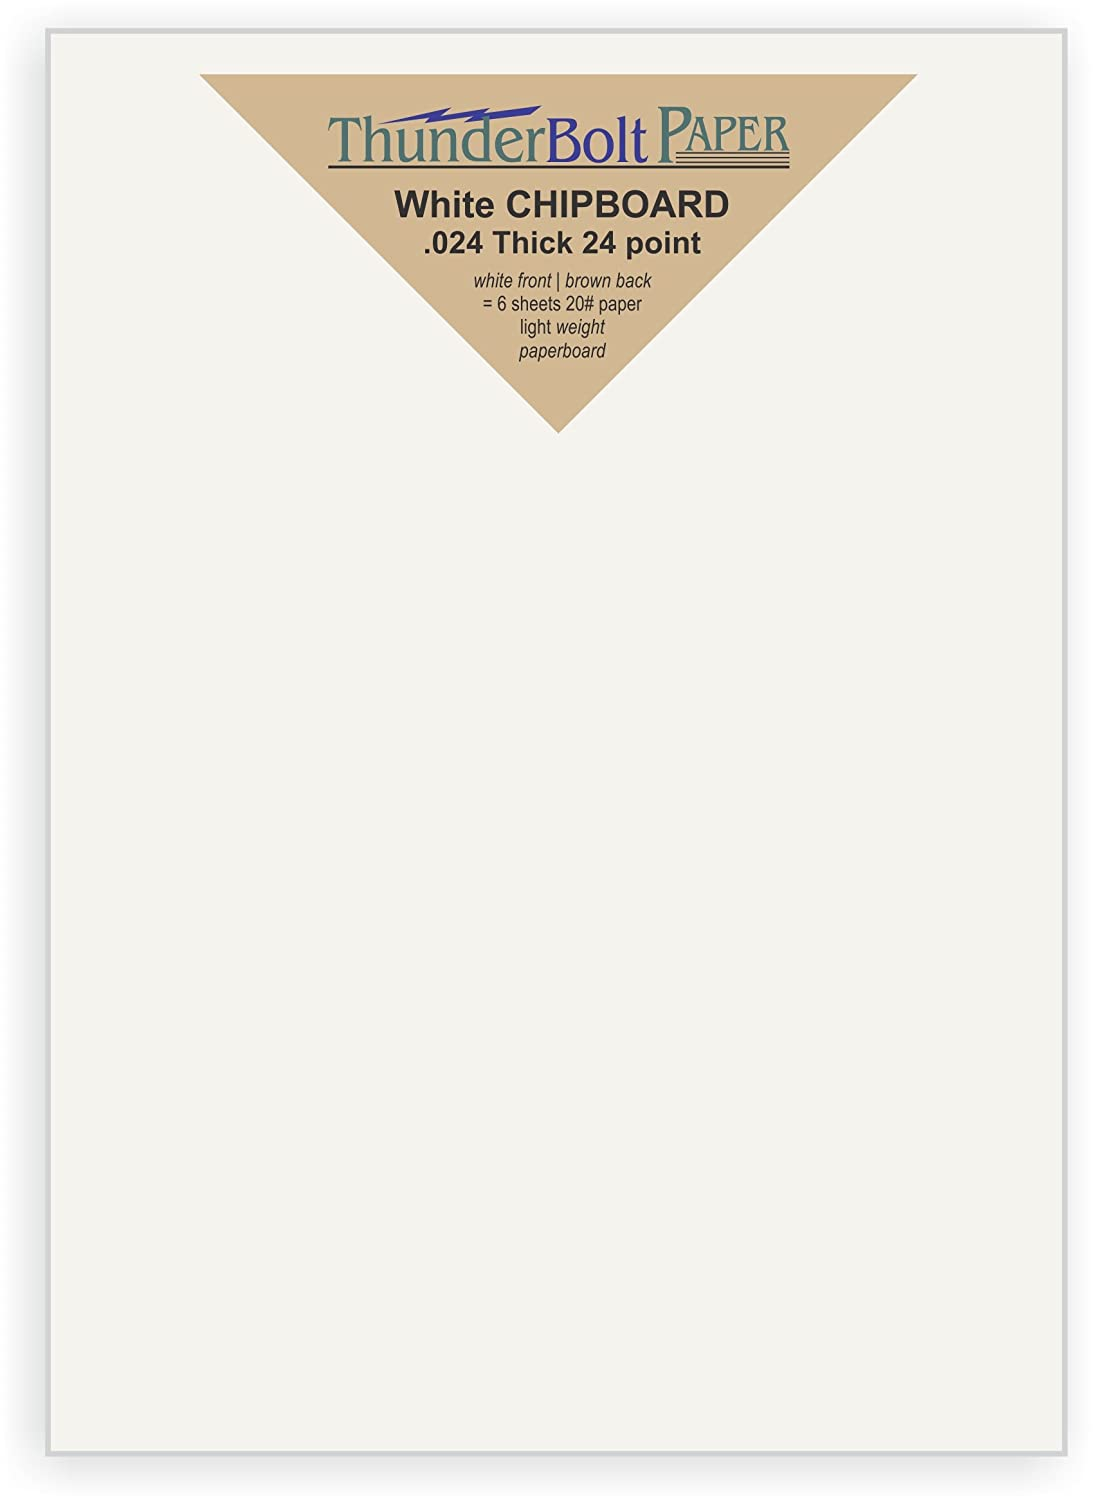 point Light Medium Weight Thickness PaperBoard .024 Photo|Card|Frame Size 5X7 Inches 50 Sheets Chipboard 24pt white 1 side Caliper White Coated Cardboard Paper 5 X 7